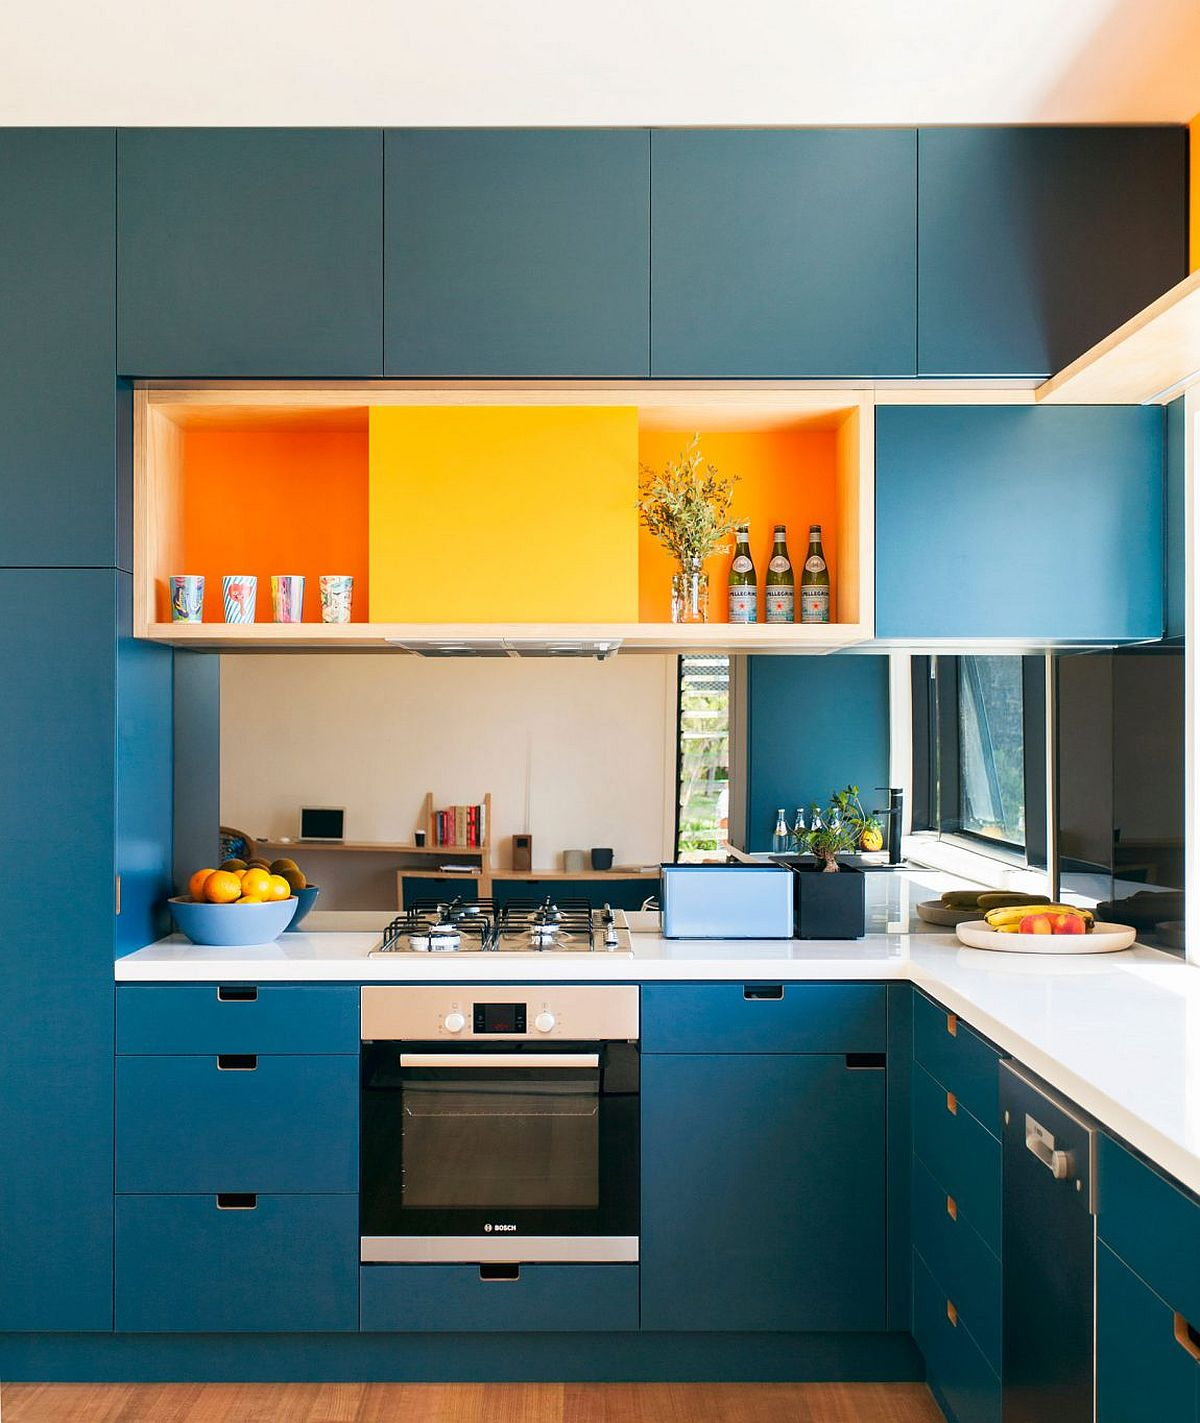 Bright blue cabinets and orange bring energy to the modern kitchen